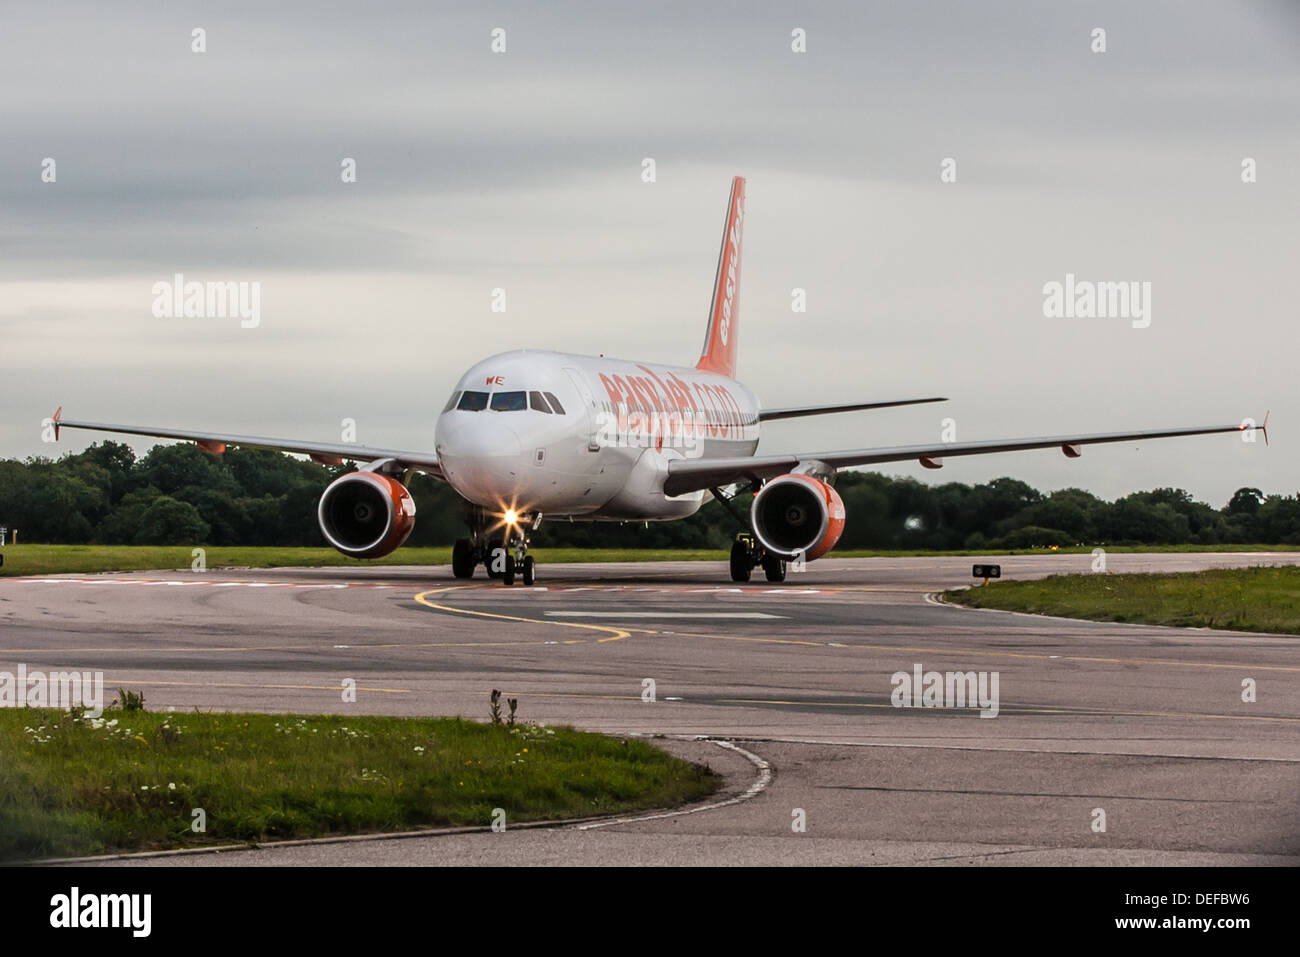 esayJet plane taxiing at Luton airport after landing Stock Photo